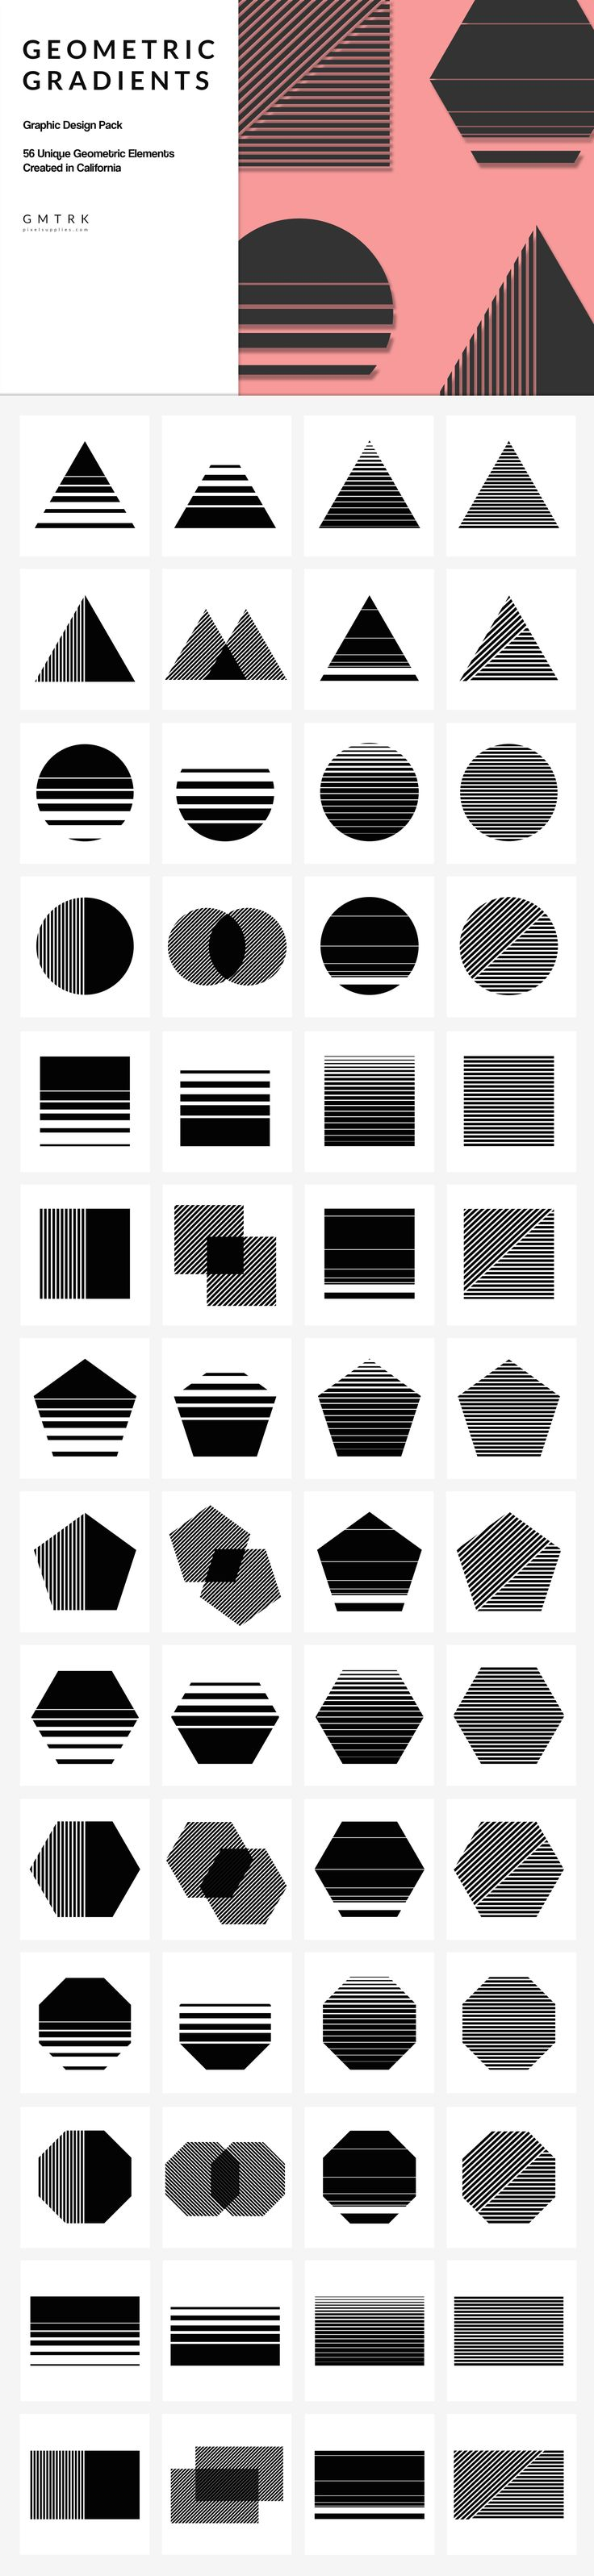 Best 25+ Geometric graphic design ideas on Pinterest | Geometric ...